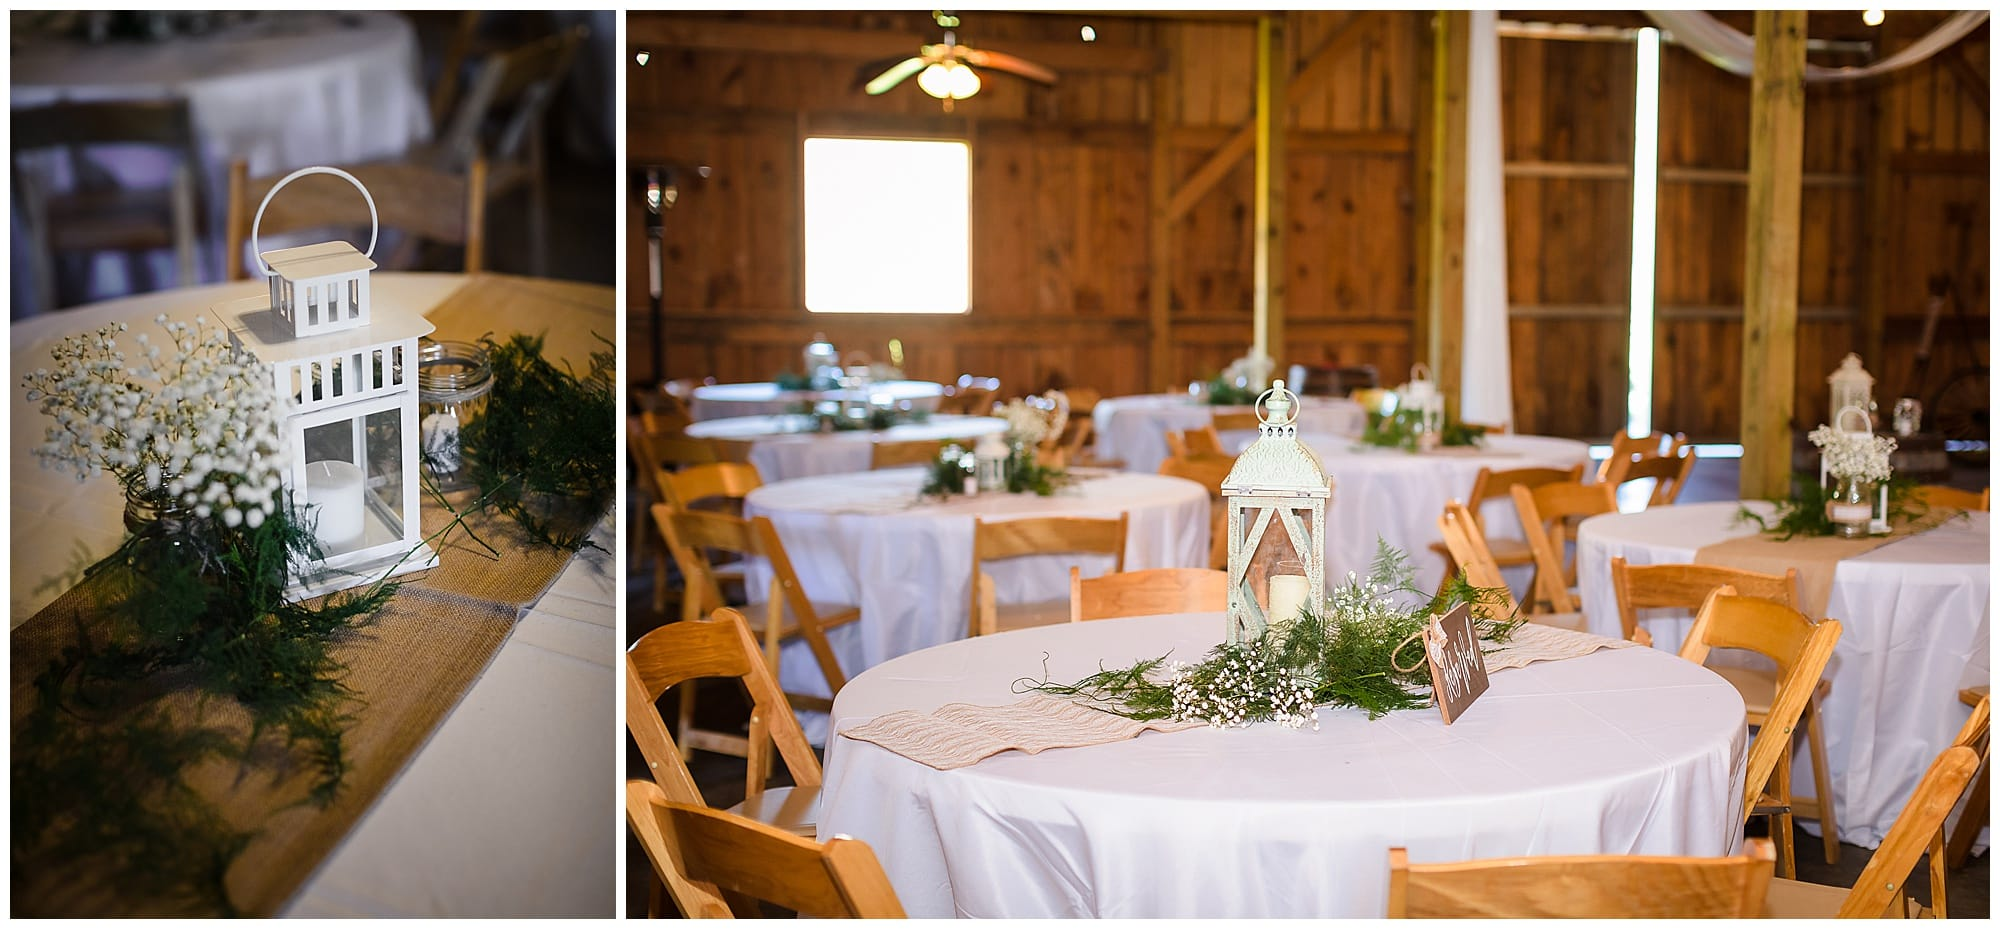 The Barn at TH Farm reception details